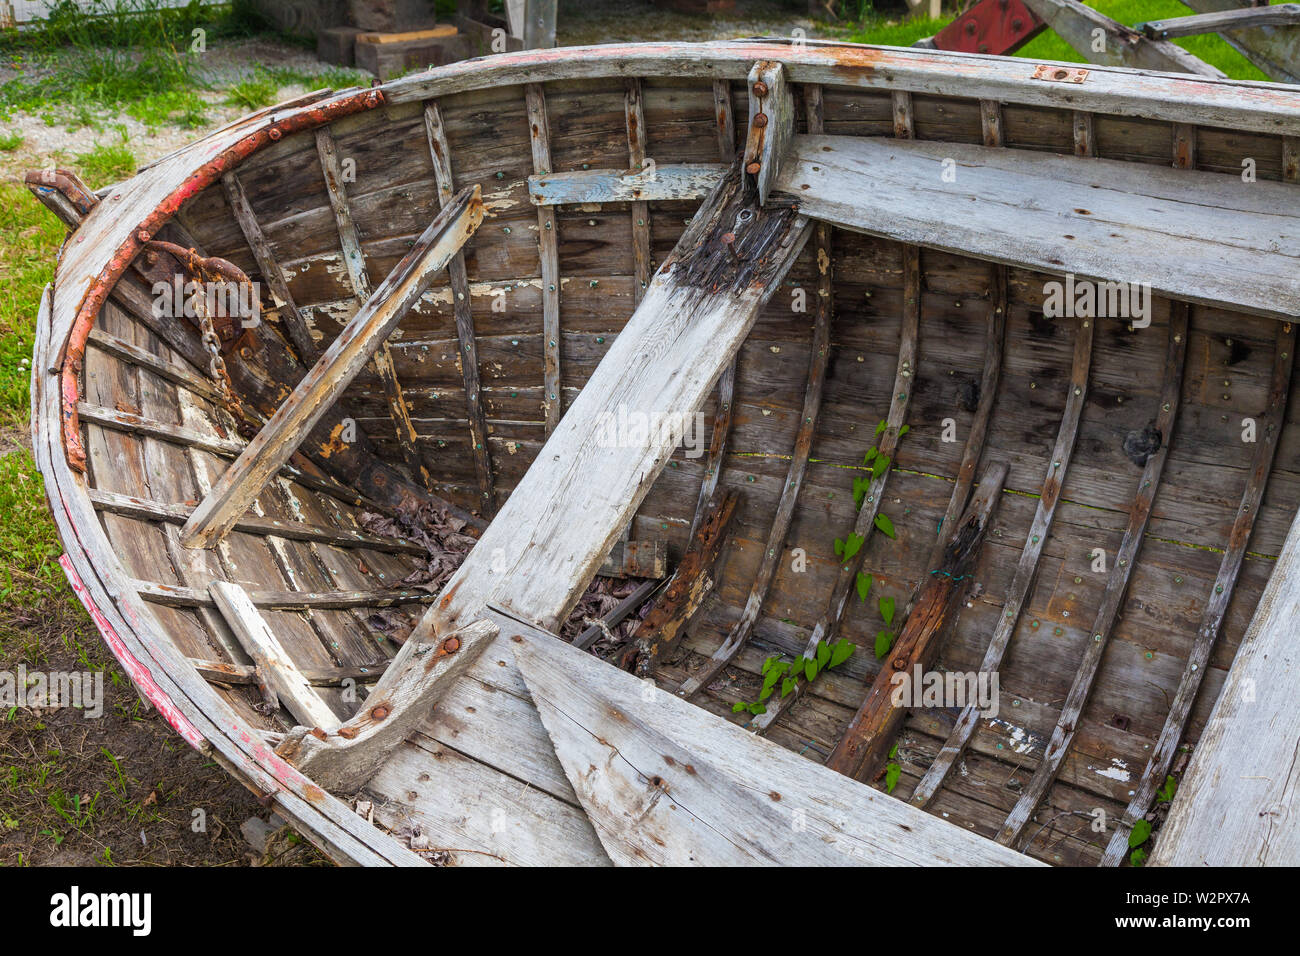 Derelict rowboat with weeds growing though the planking at the heritage Britannia Ship Yard in Steveston British Columbia Canada - Stock Image